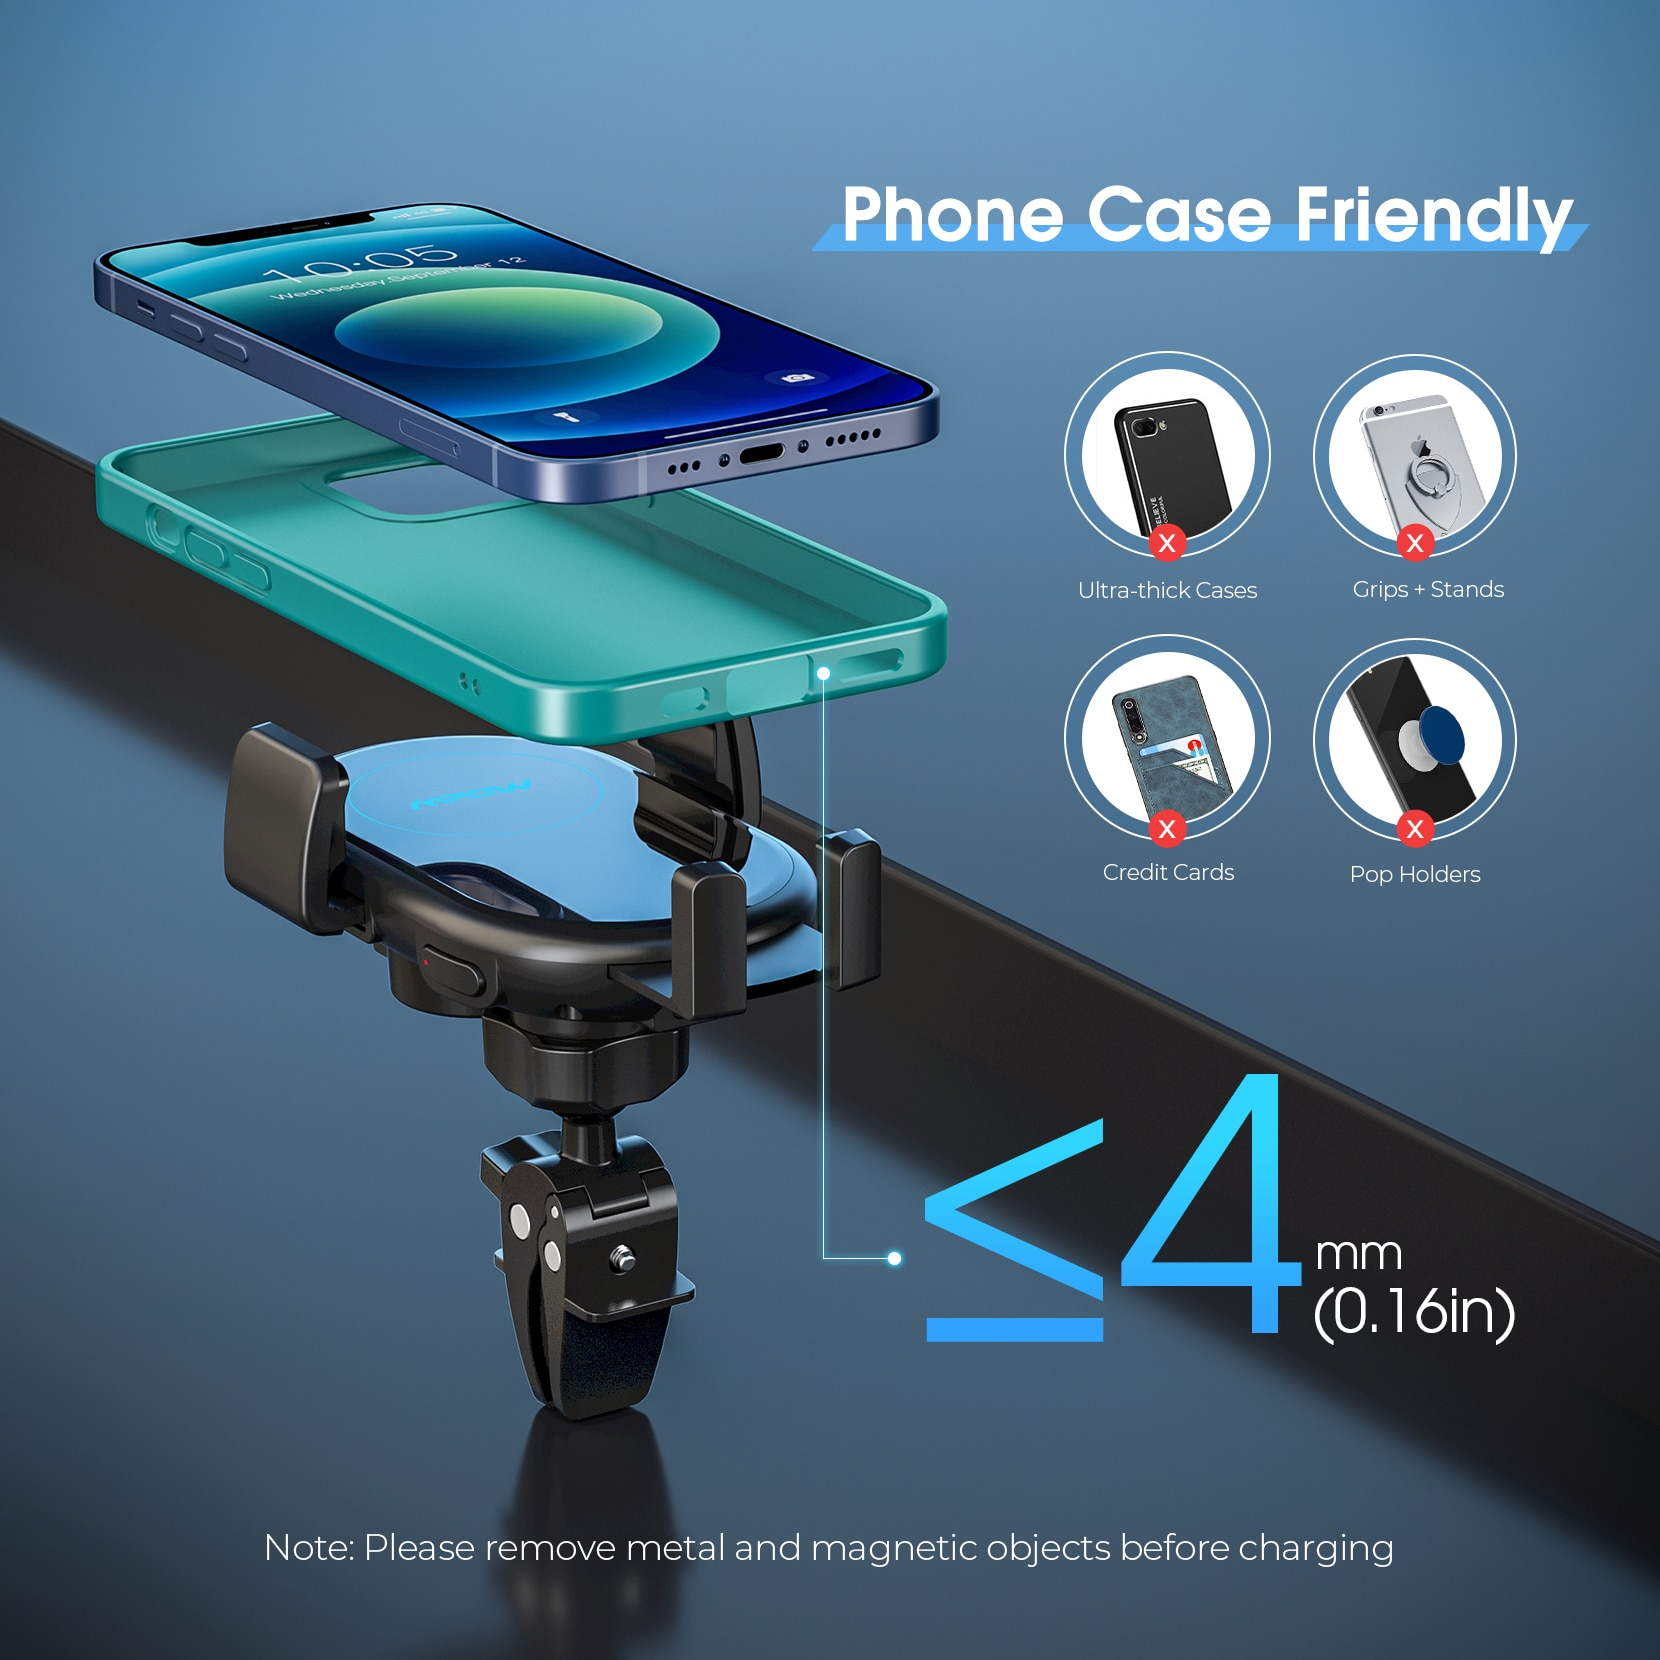 Had9aa871da744d2cb0bbcee6530c077fD - MPOW CA164 Wireless Car Charger 10W Auto-clamping Qi Fast Charging Car Mount with Built-in Battery Cup Holder Vent Phone Holder